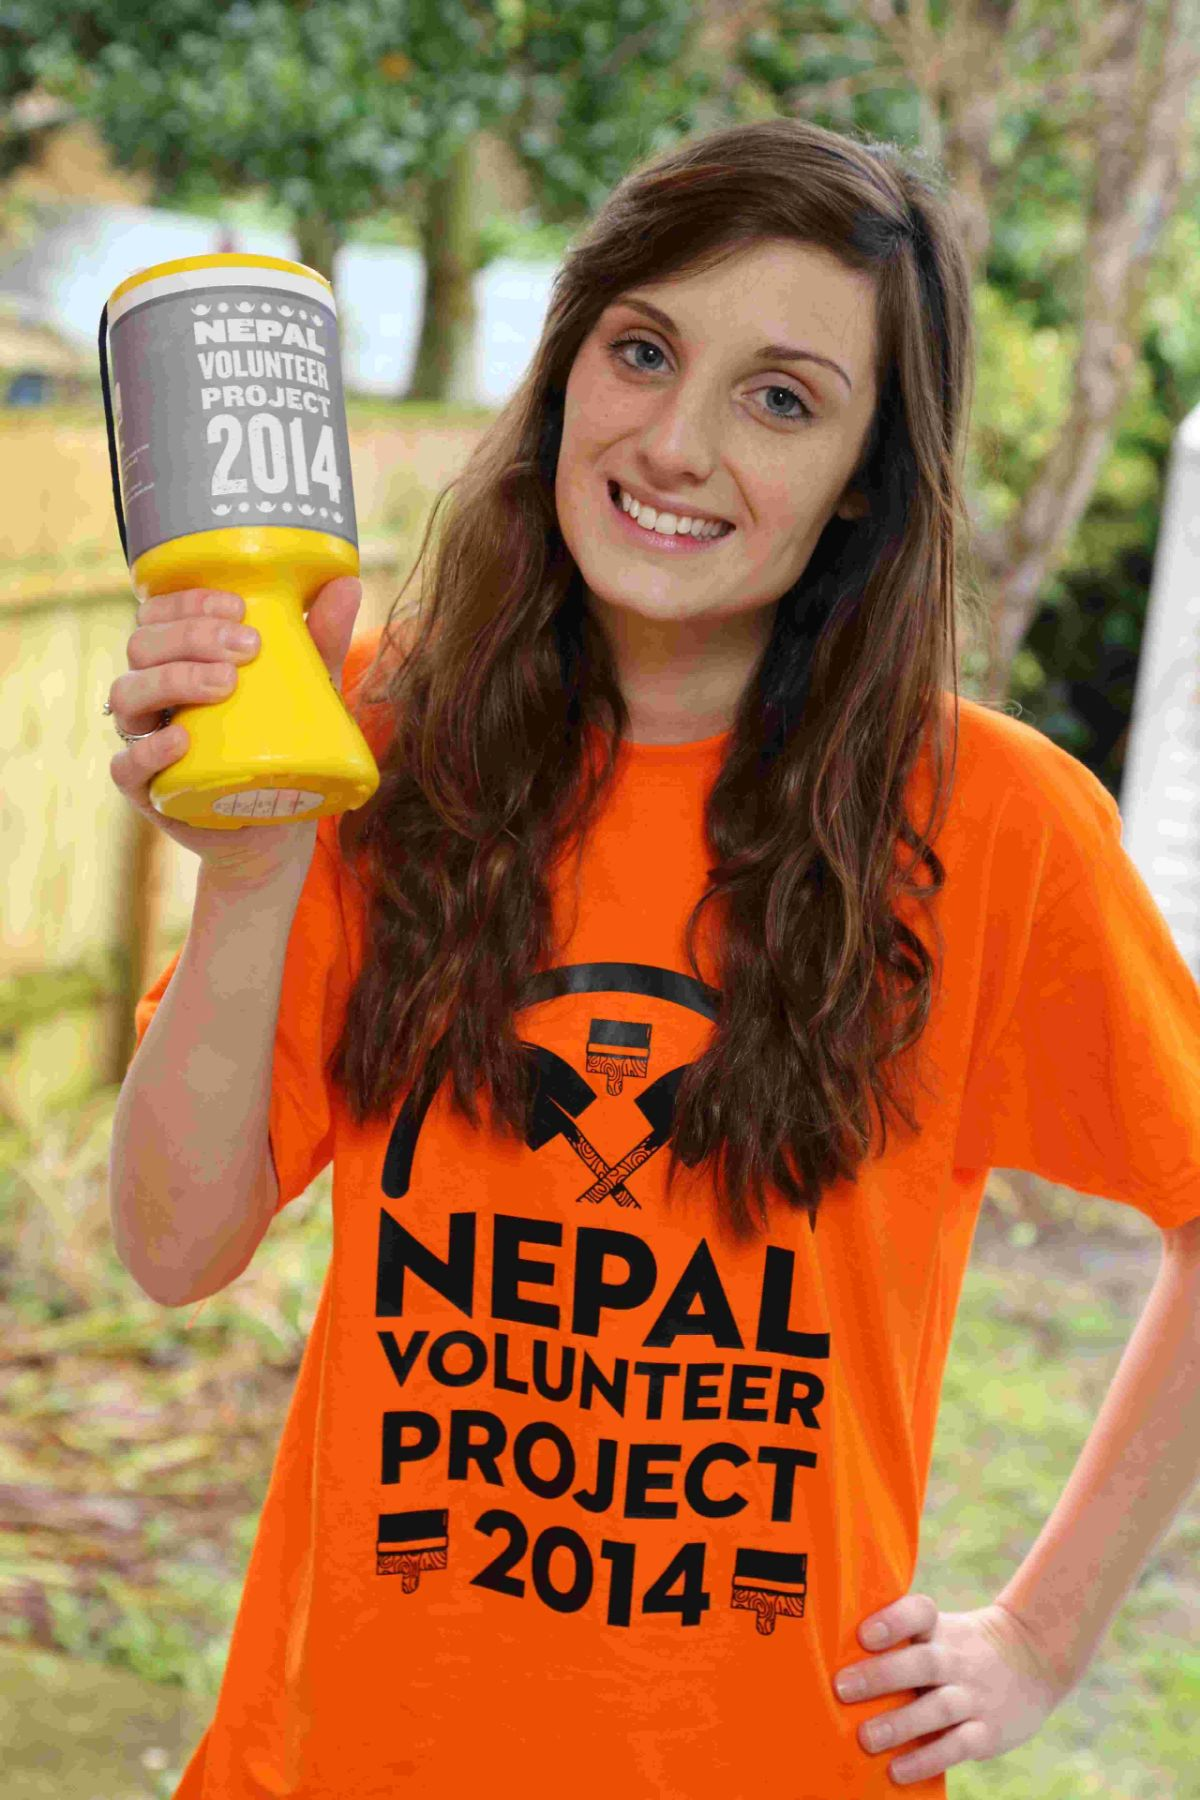 DONATION:  Student nurse Natalie Bray is raising funds  for a trip to Nepal as part of a volunteer project